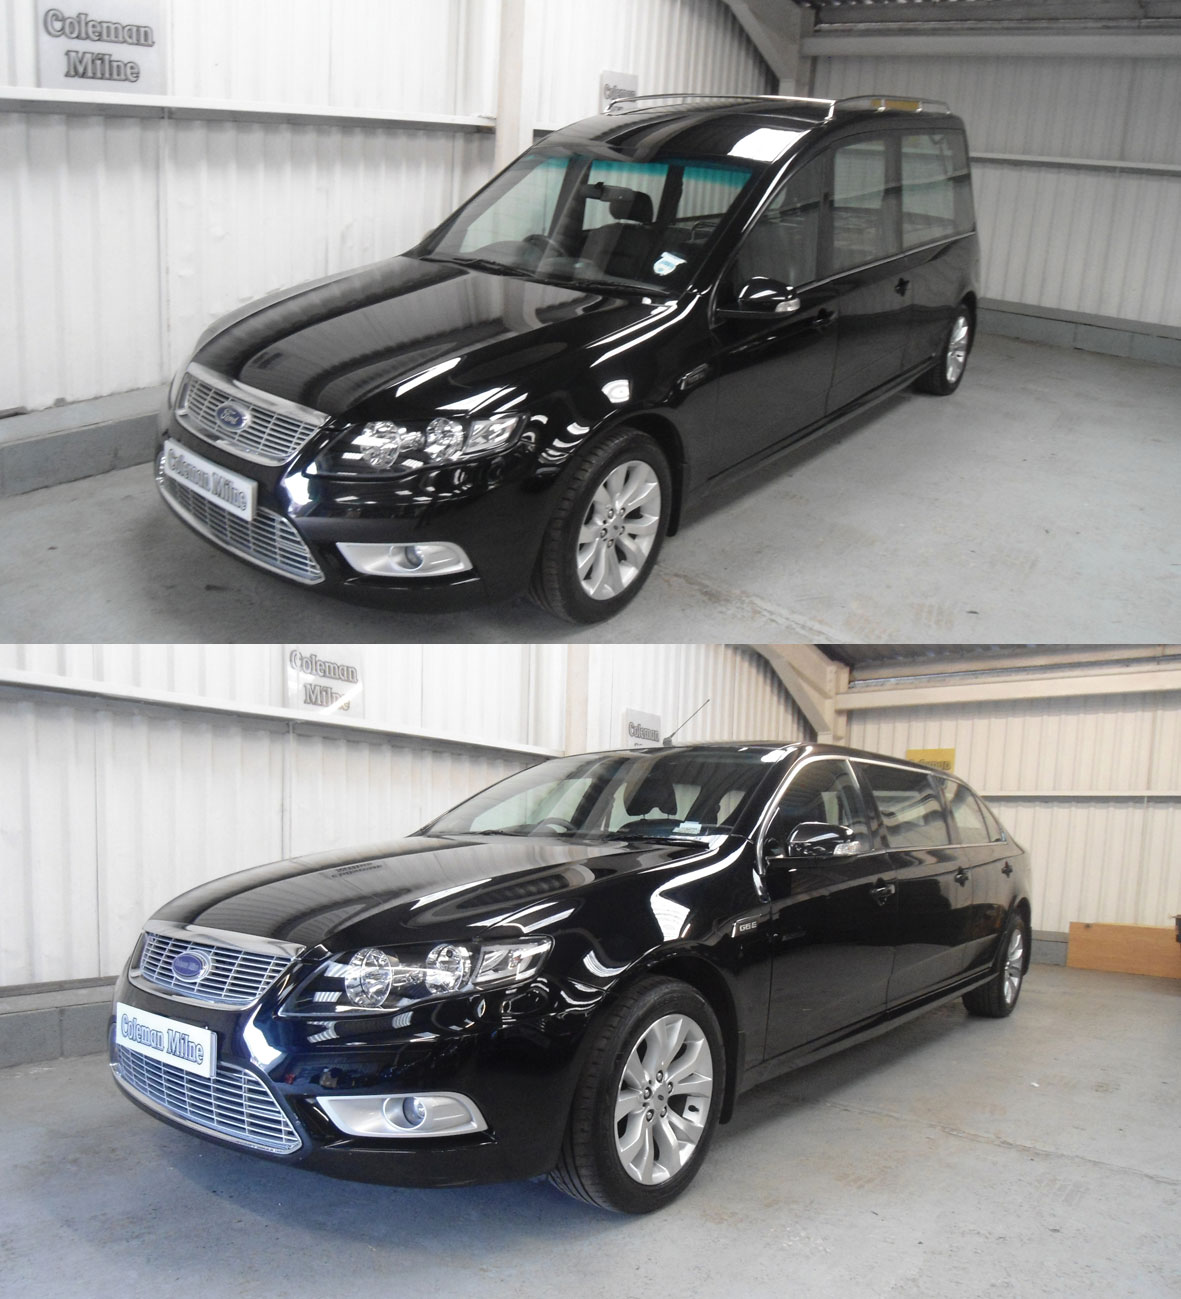 Used Funeral Cars For Sale